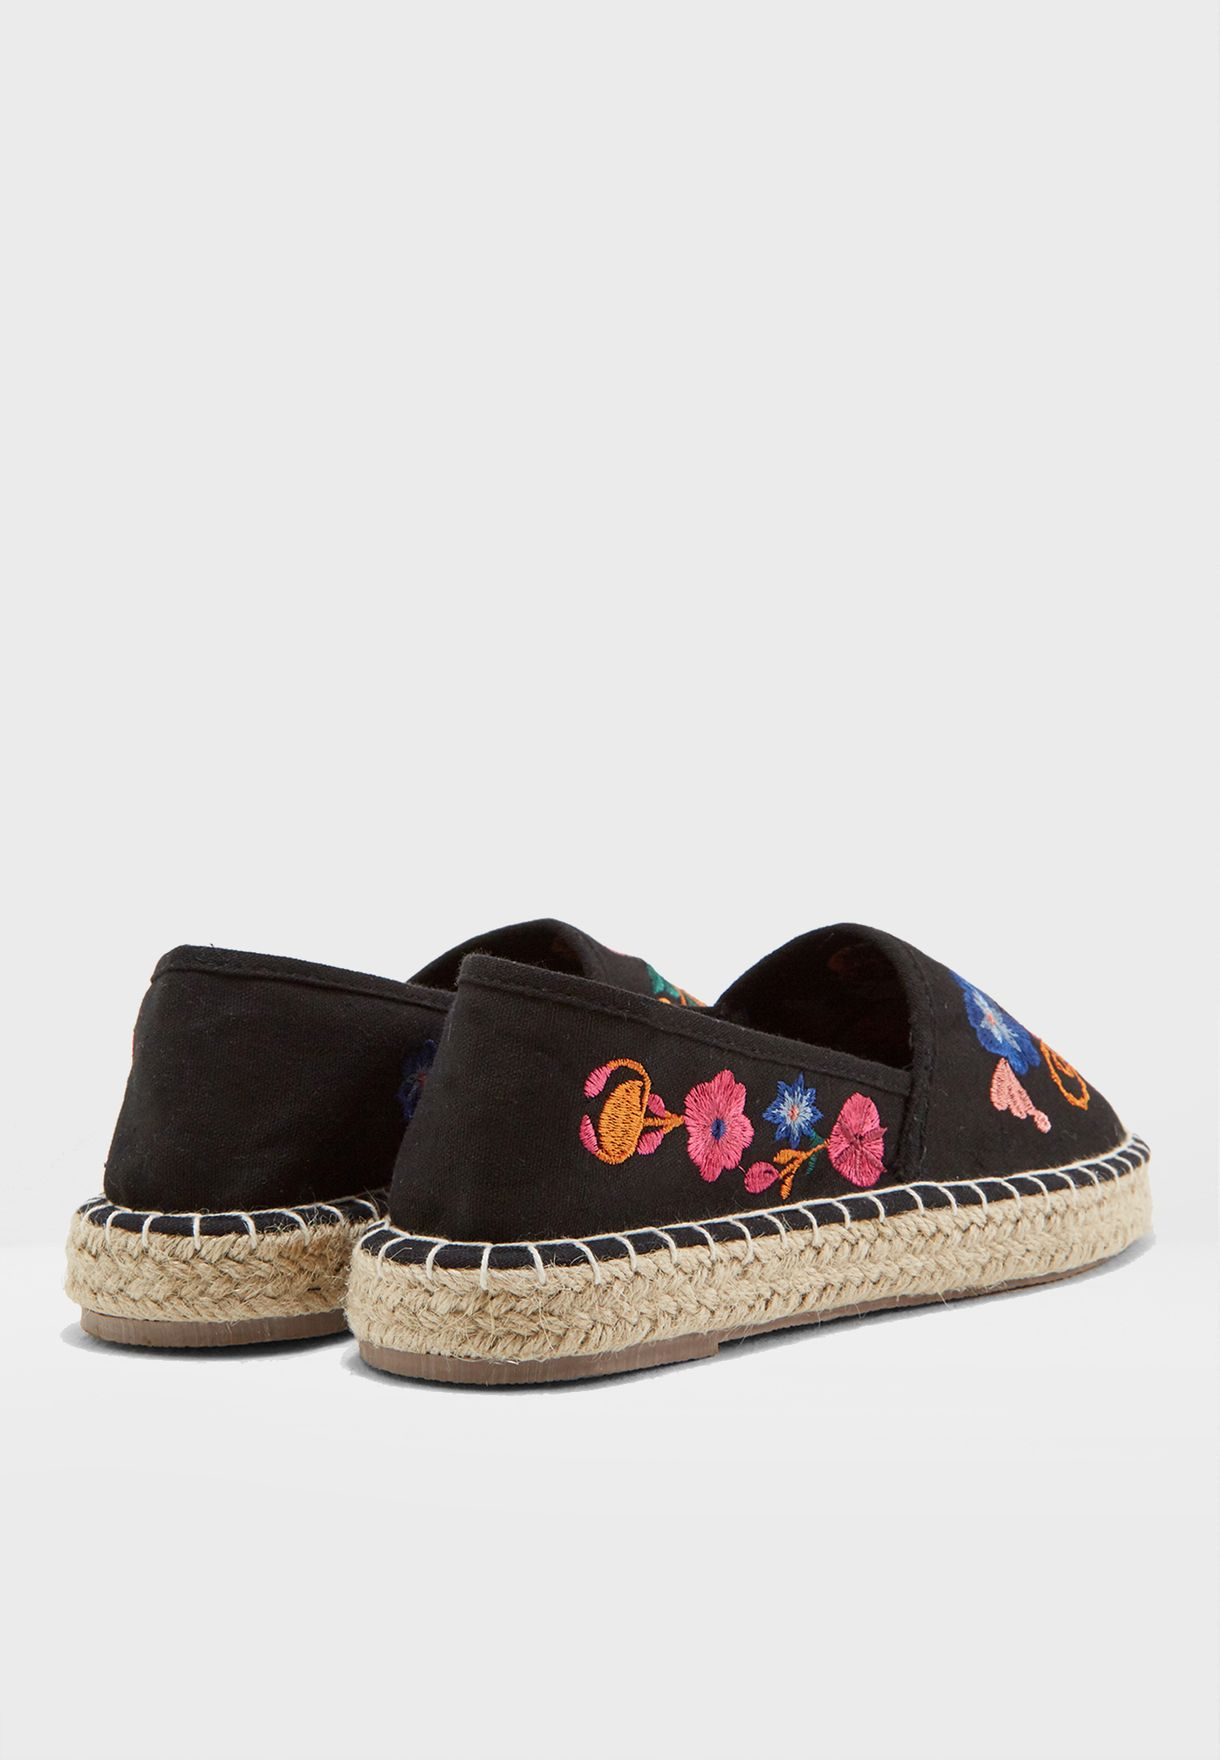 fa24079c4a1c Shop South beach black Floral Embroidered Espadrilles 66812 for ...